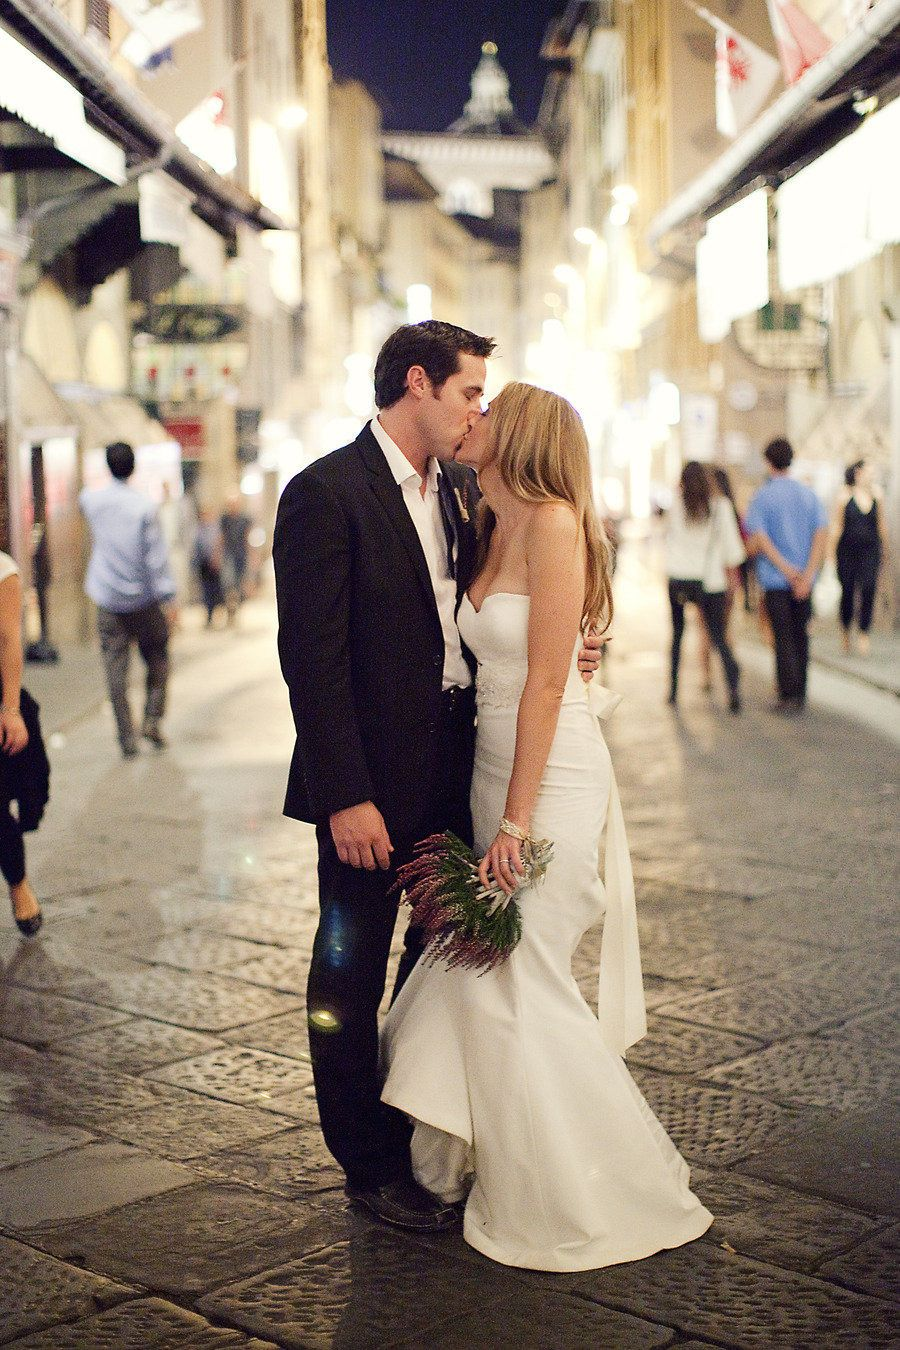 Italian Elopement in Florence by Sarah Kate, Photographer ...